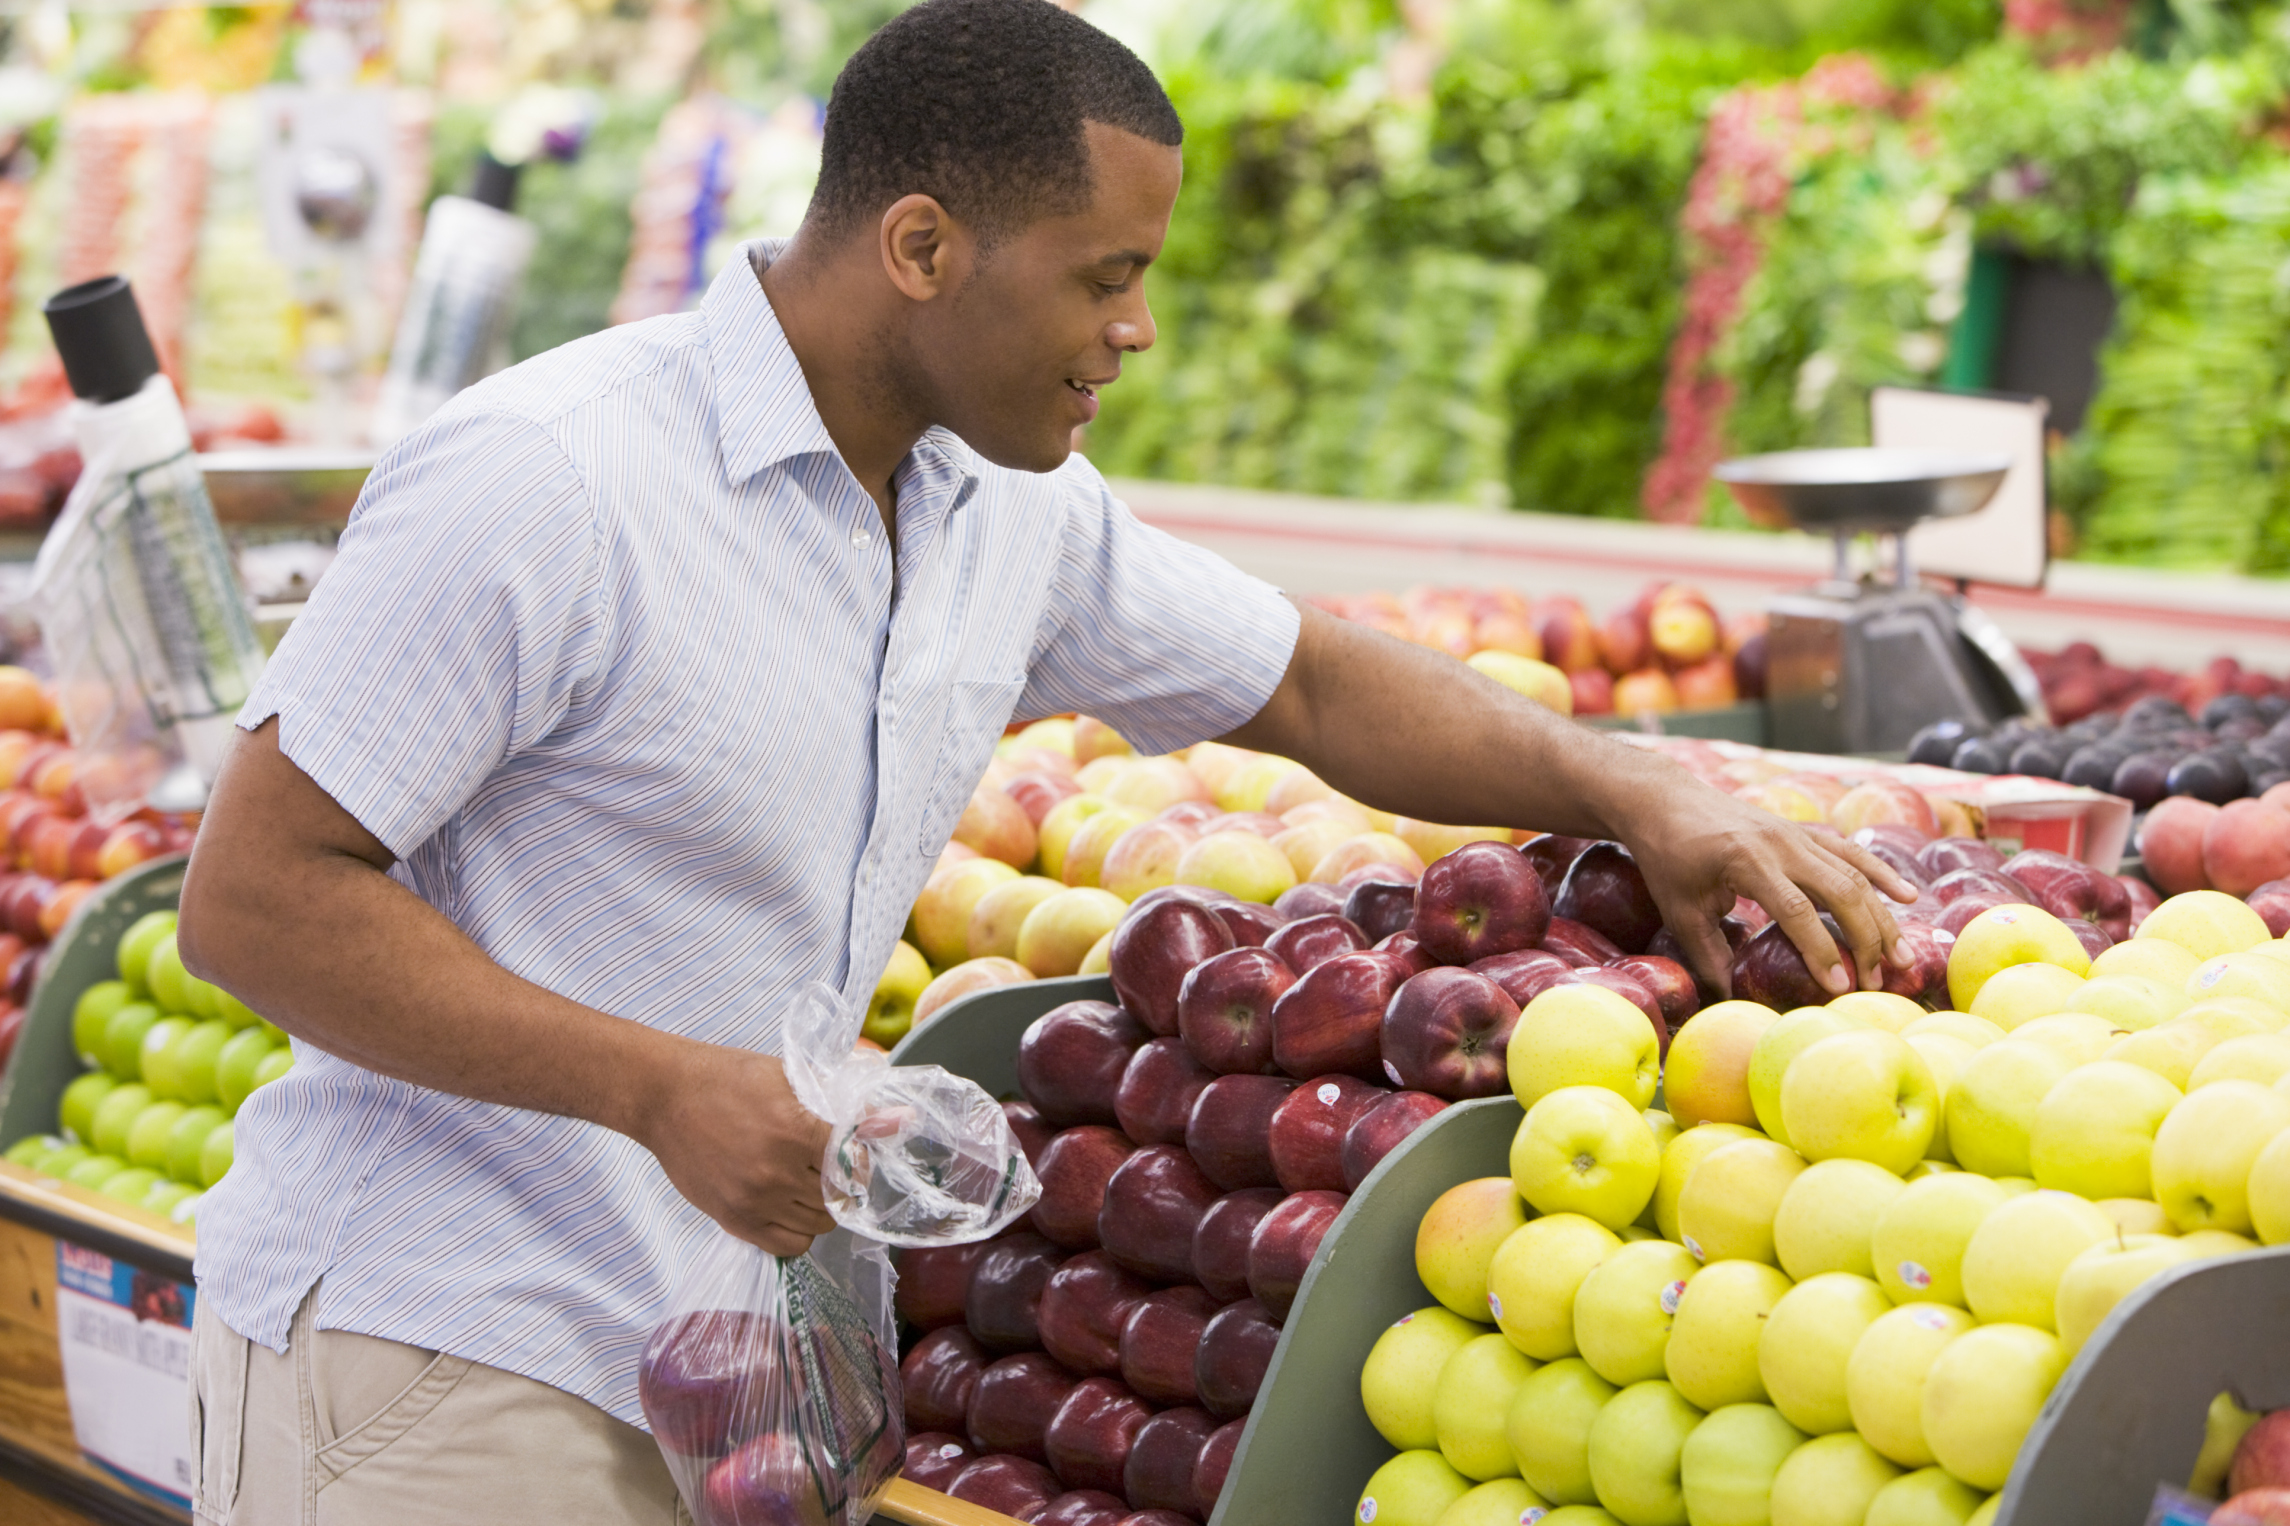 9 Simple Tricks For Making Better Food Choices